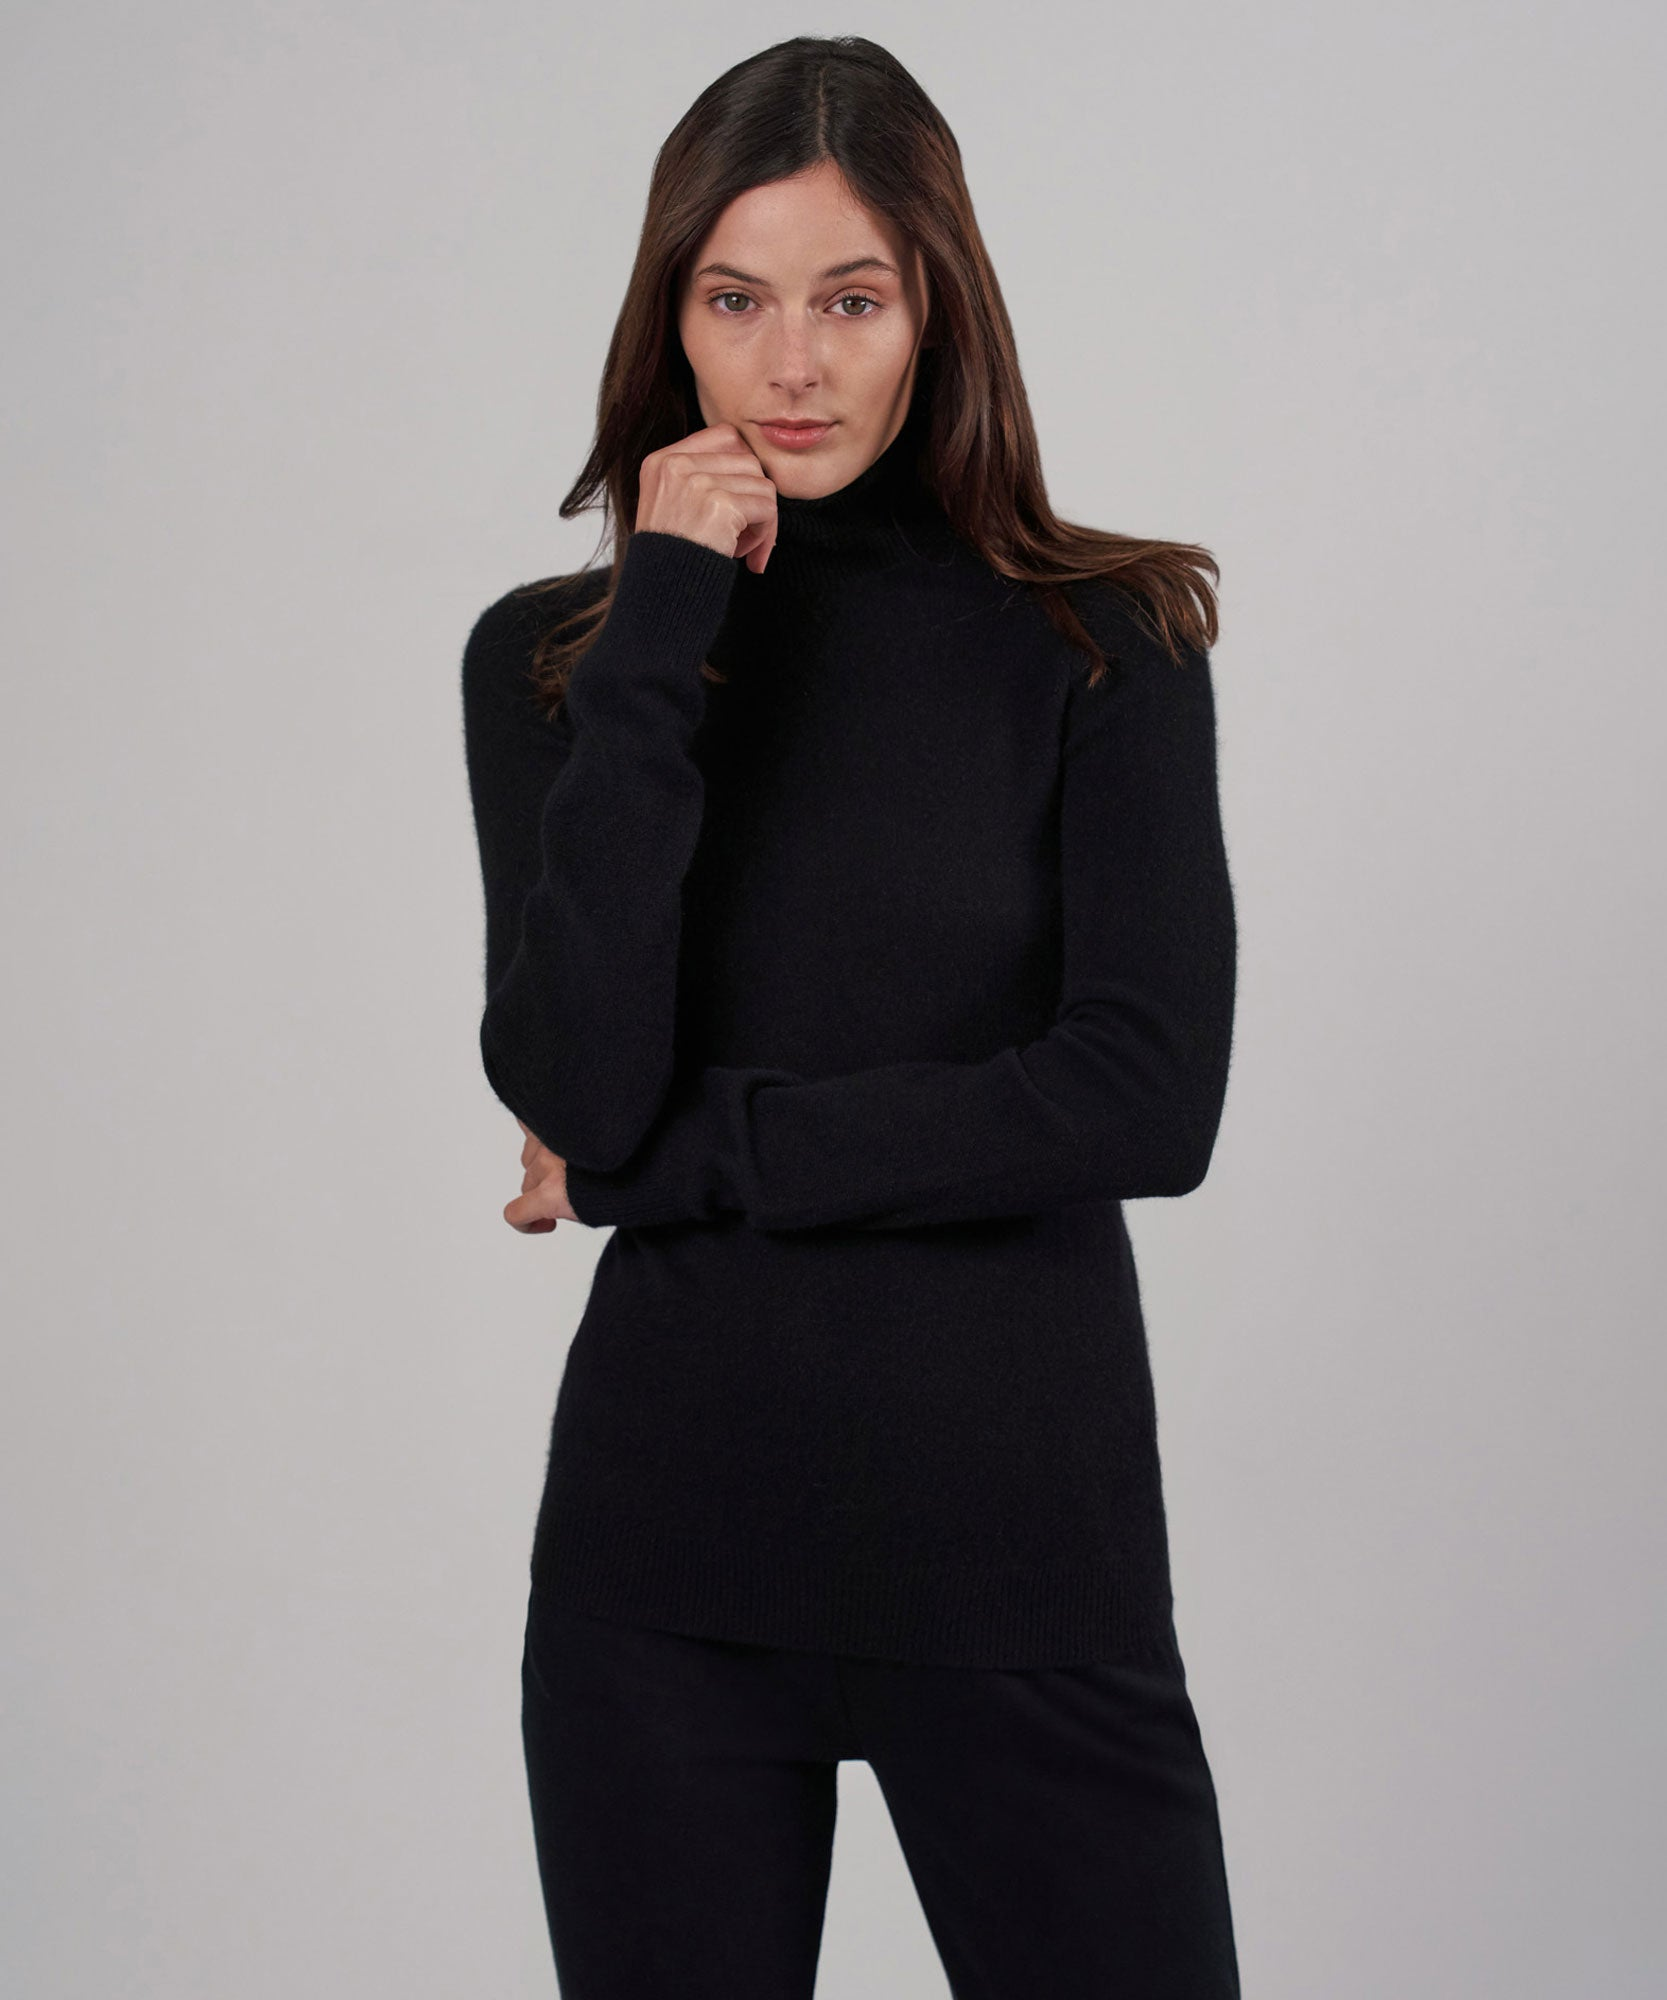 Black Cashmere Long Sleeve Turtleneck Sweater - Women's Sweater by ATM Anthony Thomas Melillo